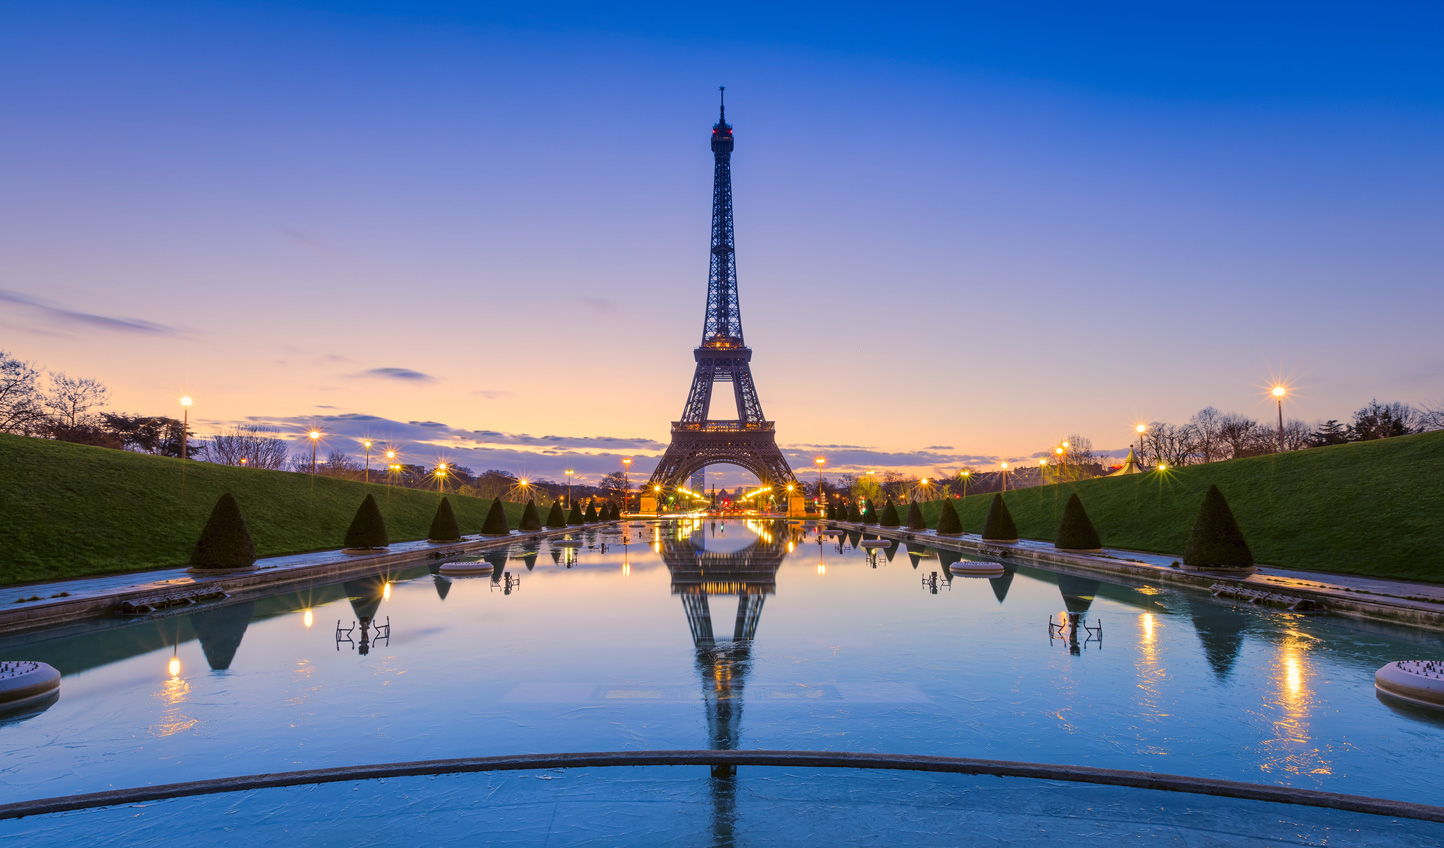 Watch the sunset from the most romantic spot in the world-the Eiffel Tower, before dining at Two Michelin Star restaurant Le Jules Verne